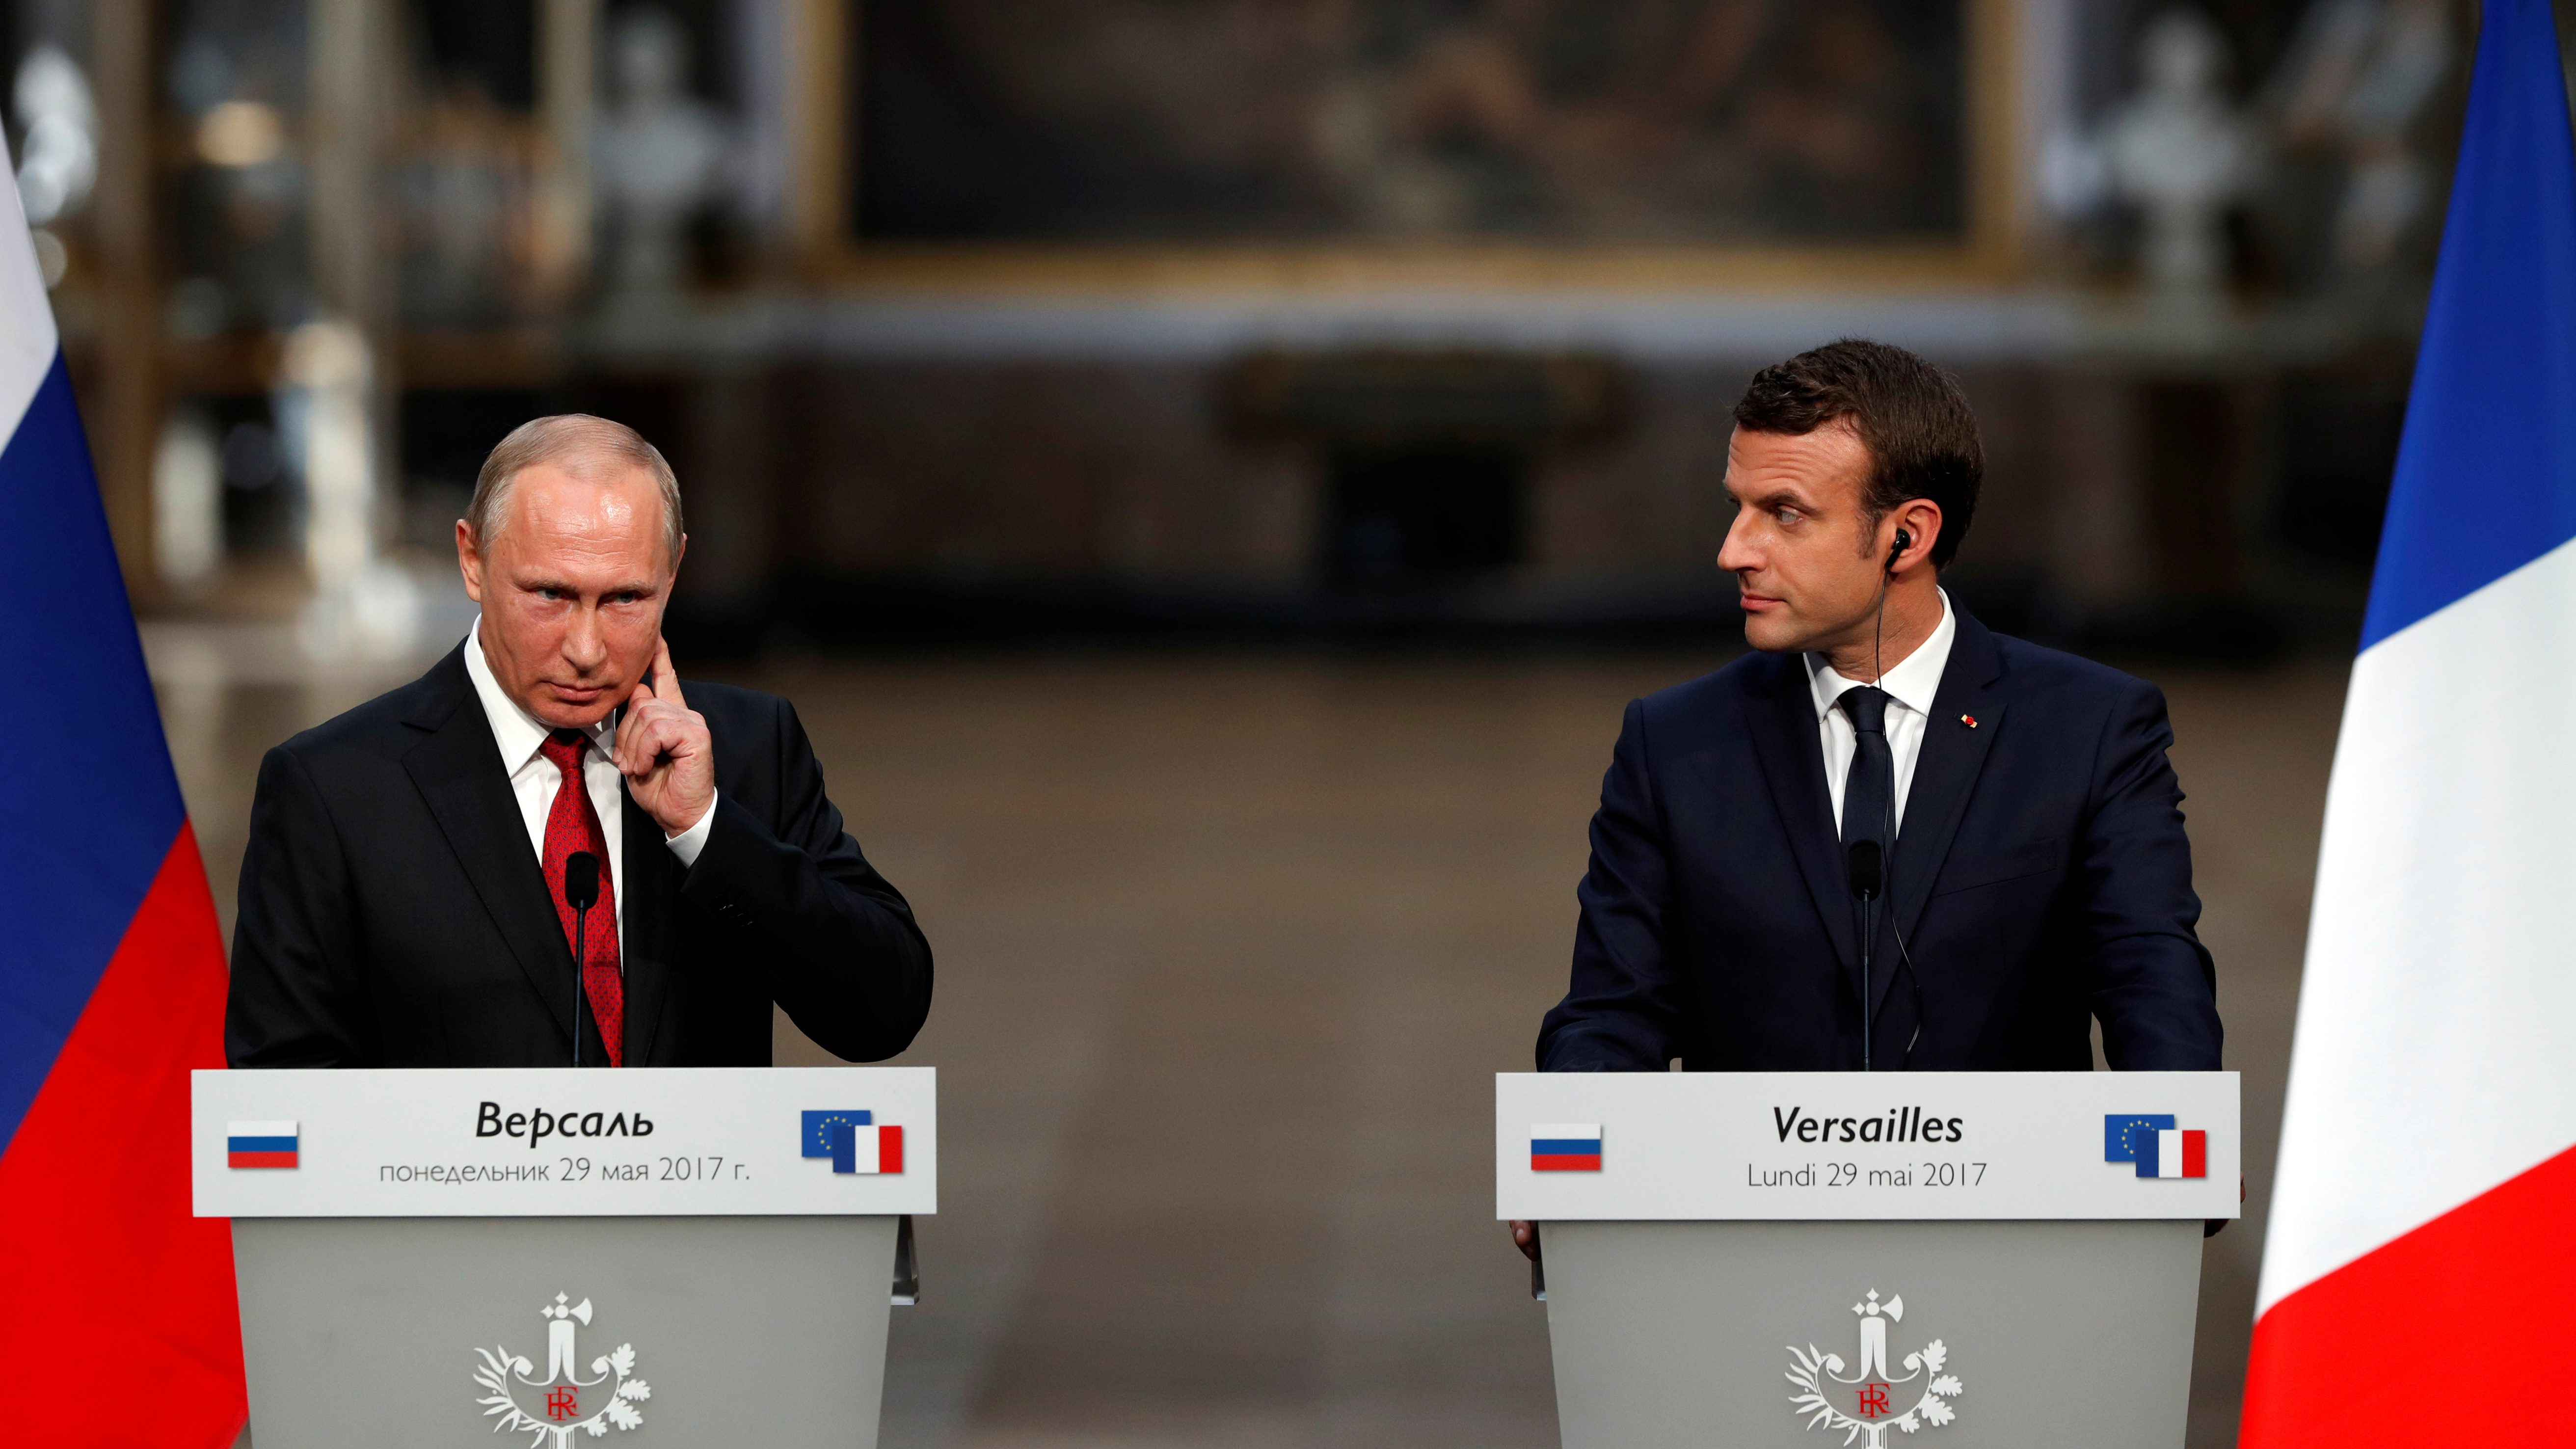 French President Emmanuel Macron (R) and Russian President Vladimir Putin (L) react during a joint press conference at the Chateau de Versailles before the opening of an exhibition marking 300 years of diplomatic ties between the two countries in Versailles, France, May 29, 2017.   REUTERS/Philippe Wojazer - RTX38490